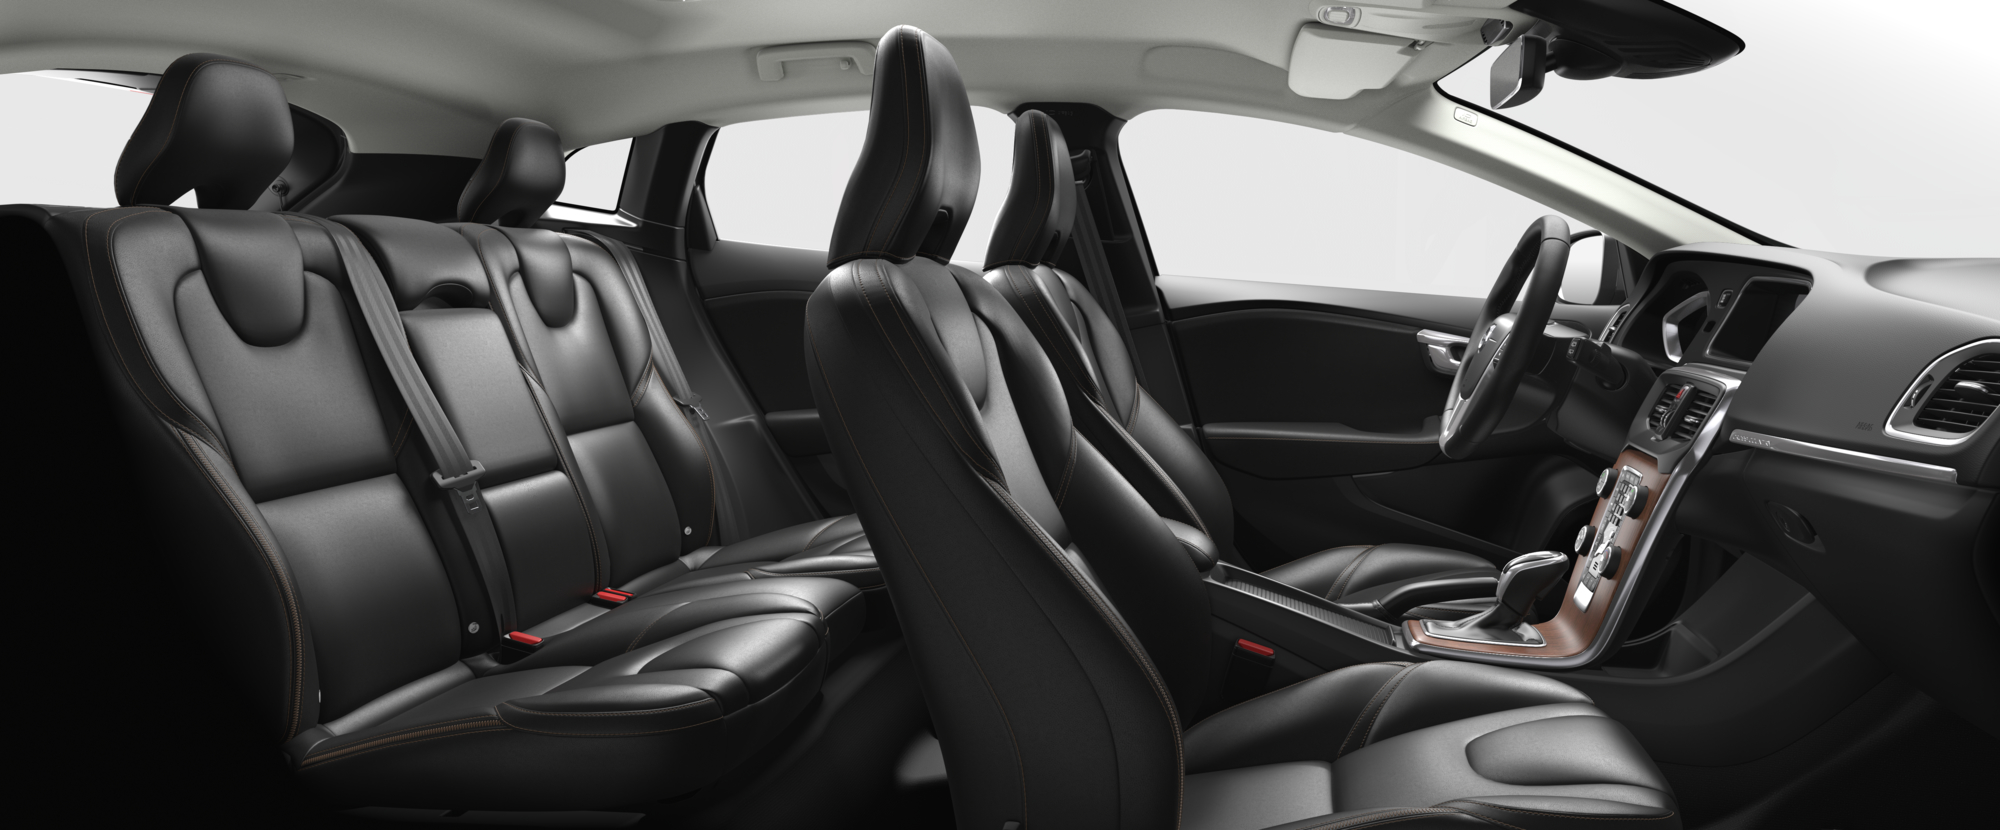 Interior shot of the Volvo V40 Cross Country with Charcoal Leather Seats